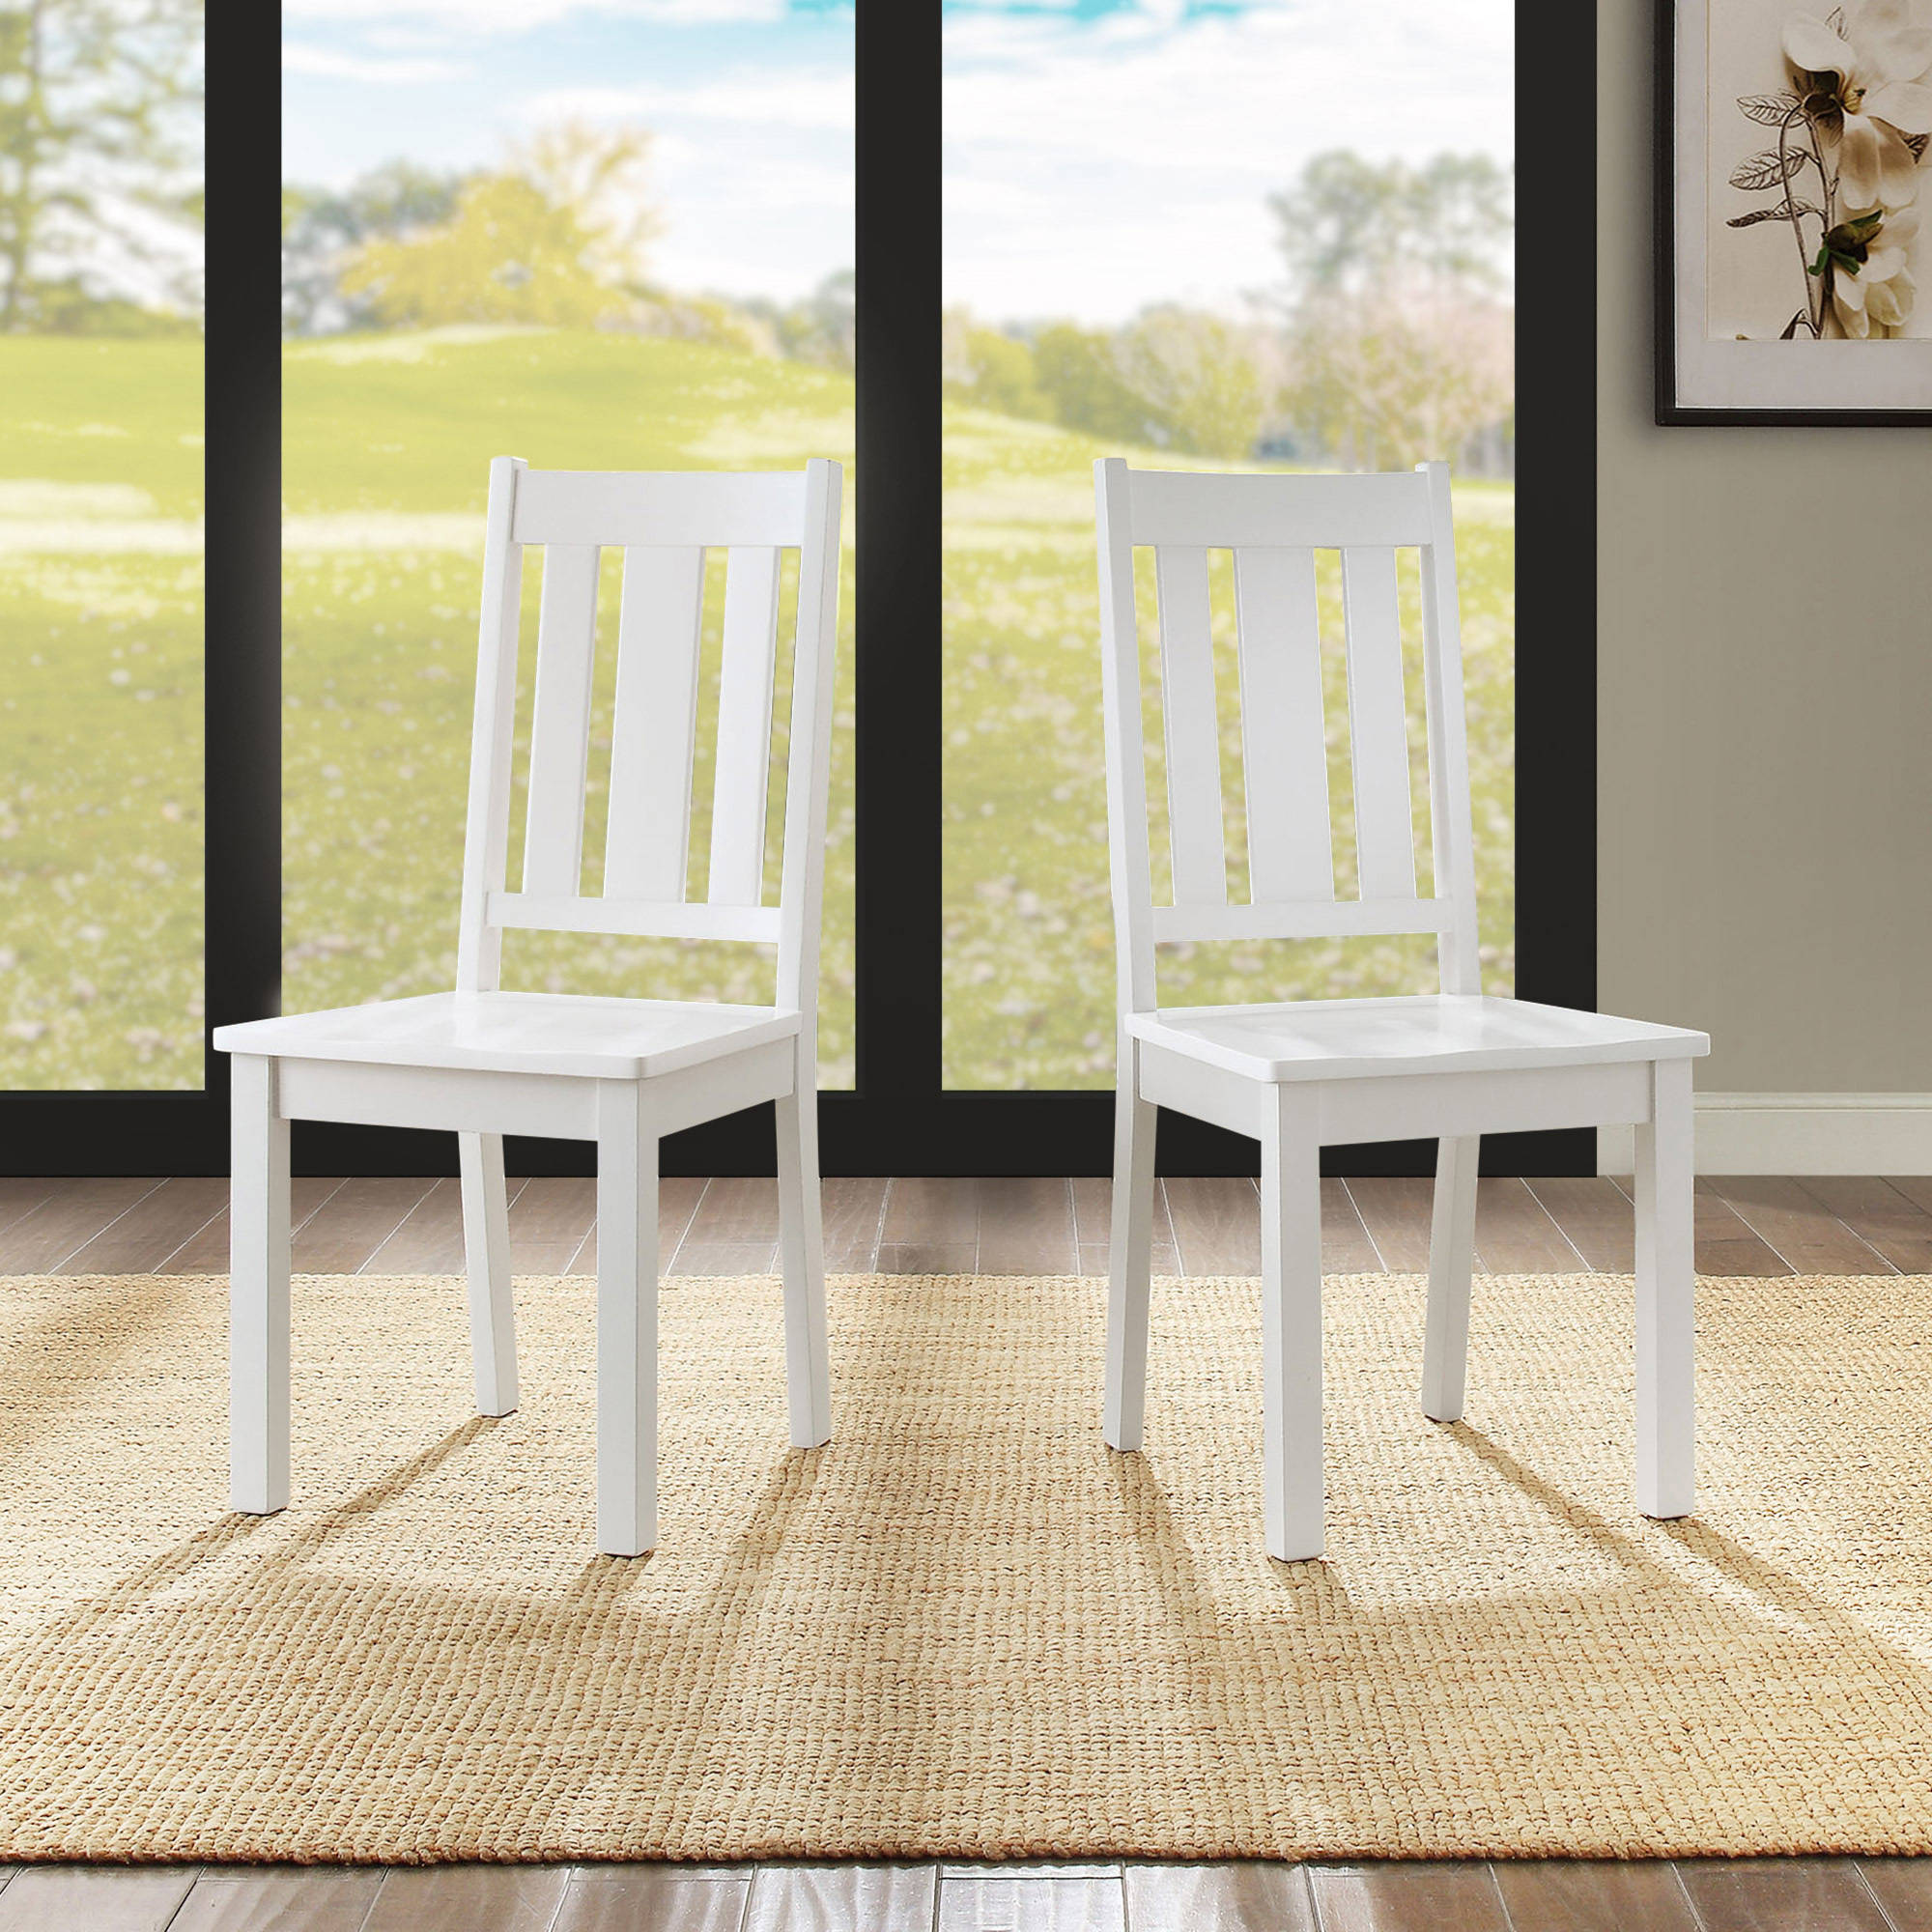 Better Homes and Gardens Bankston Dining Chair, White, 2 Pack